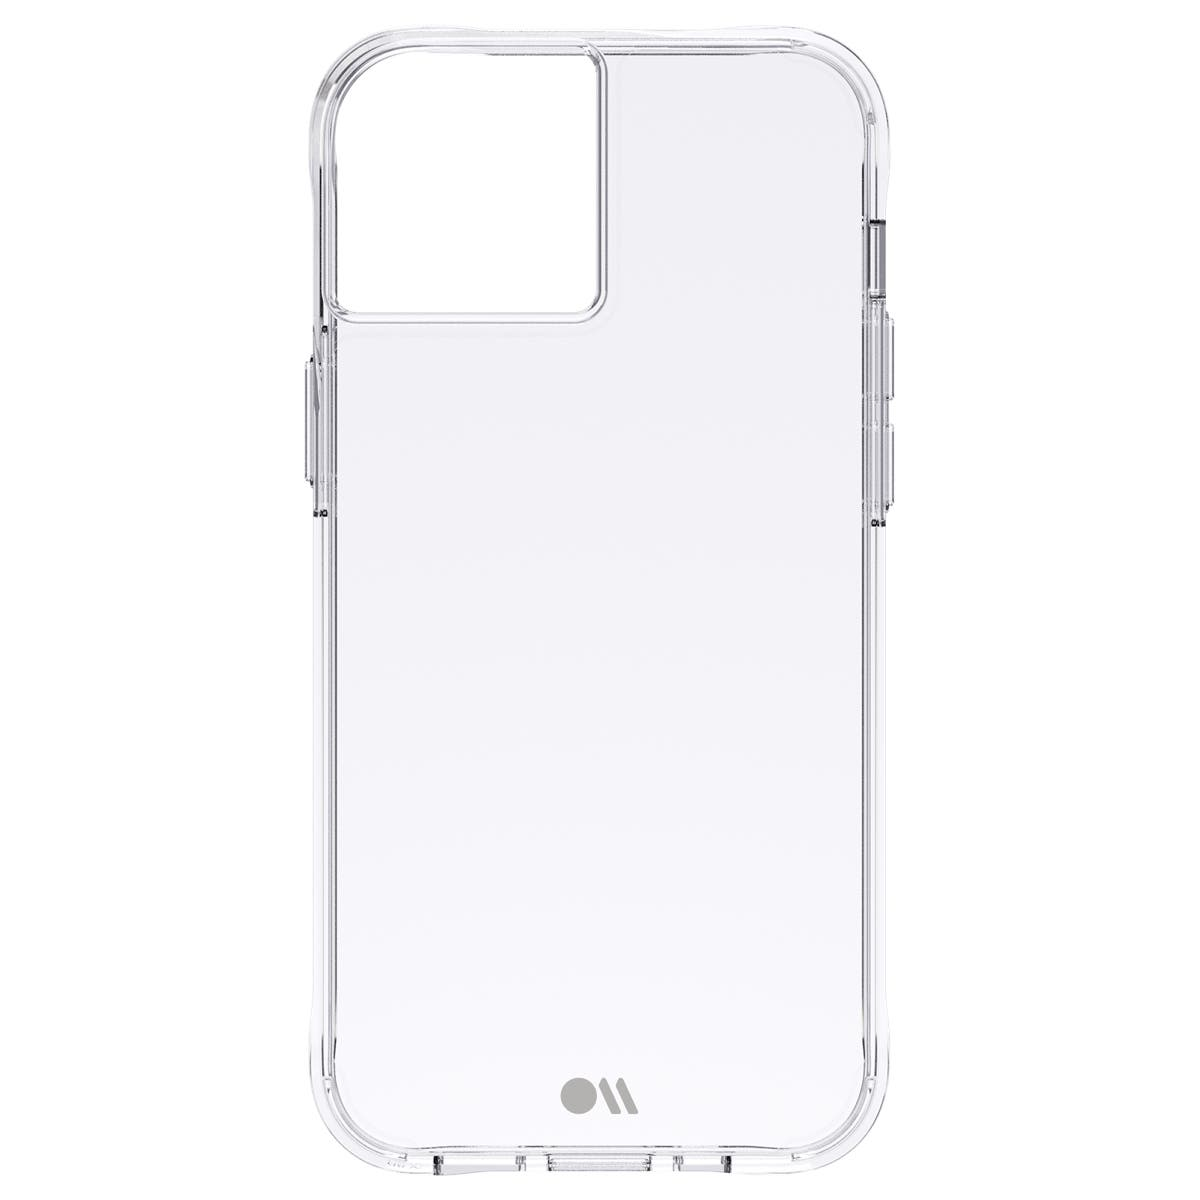 Case Mate Tough Case for iPhone 13 Pro - Clear